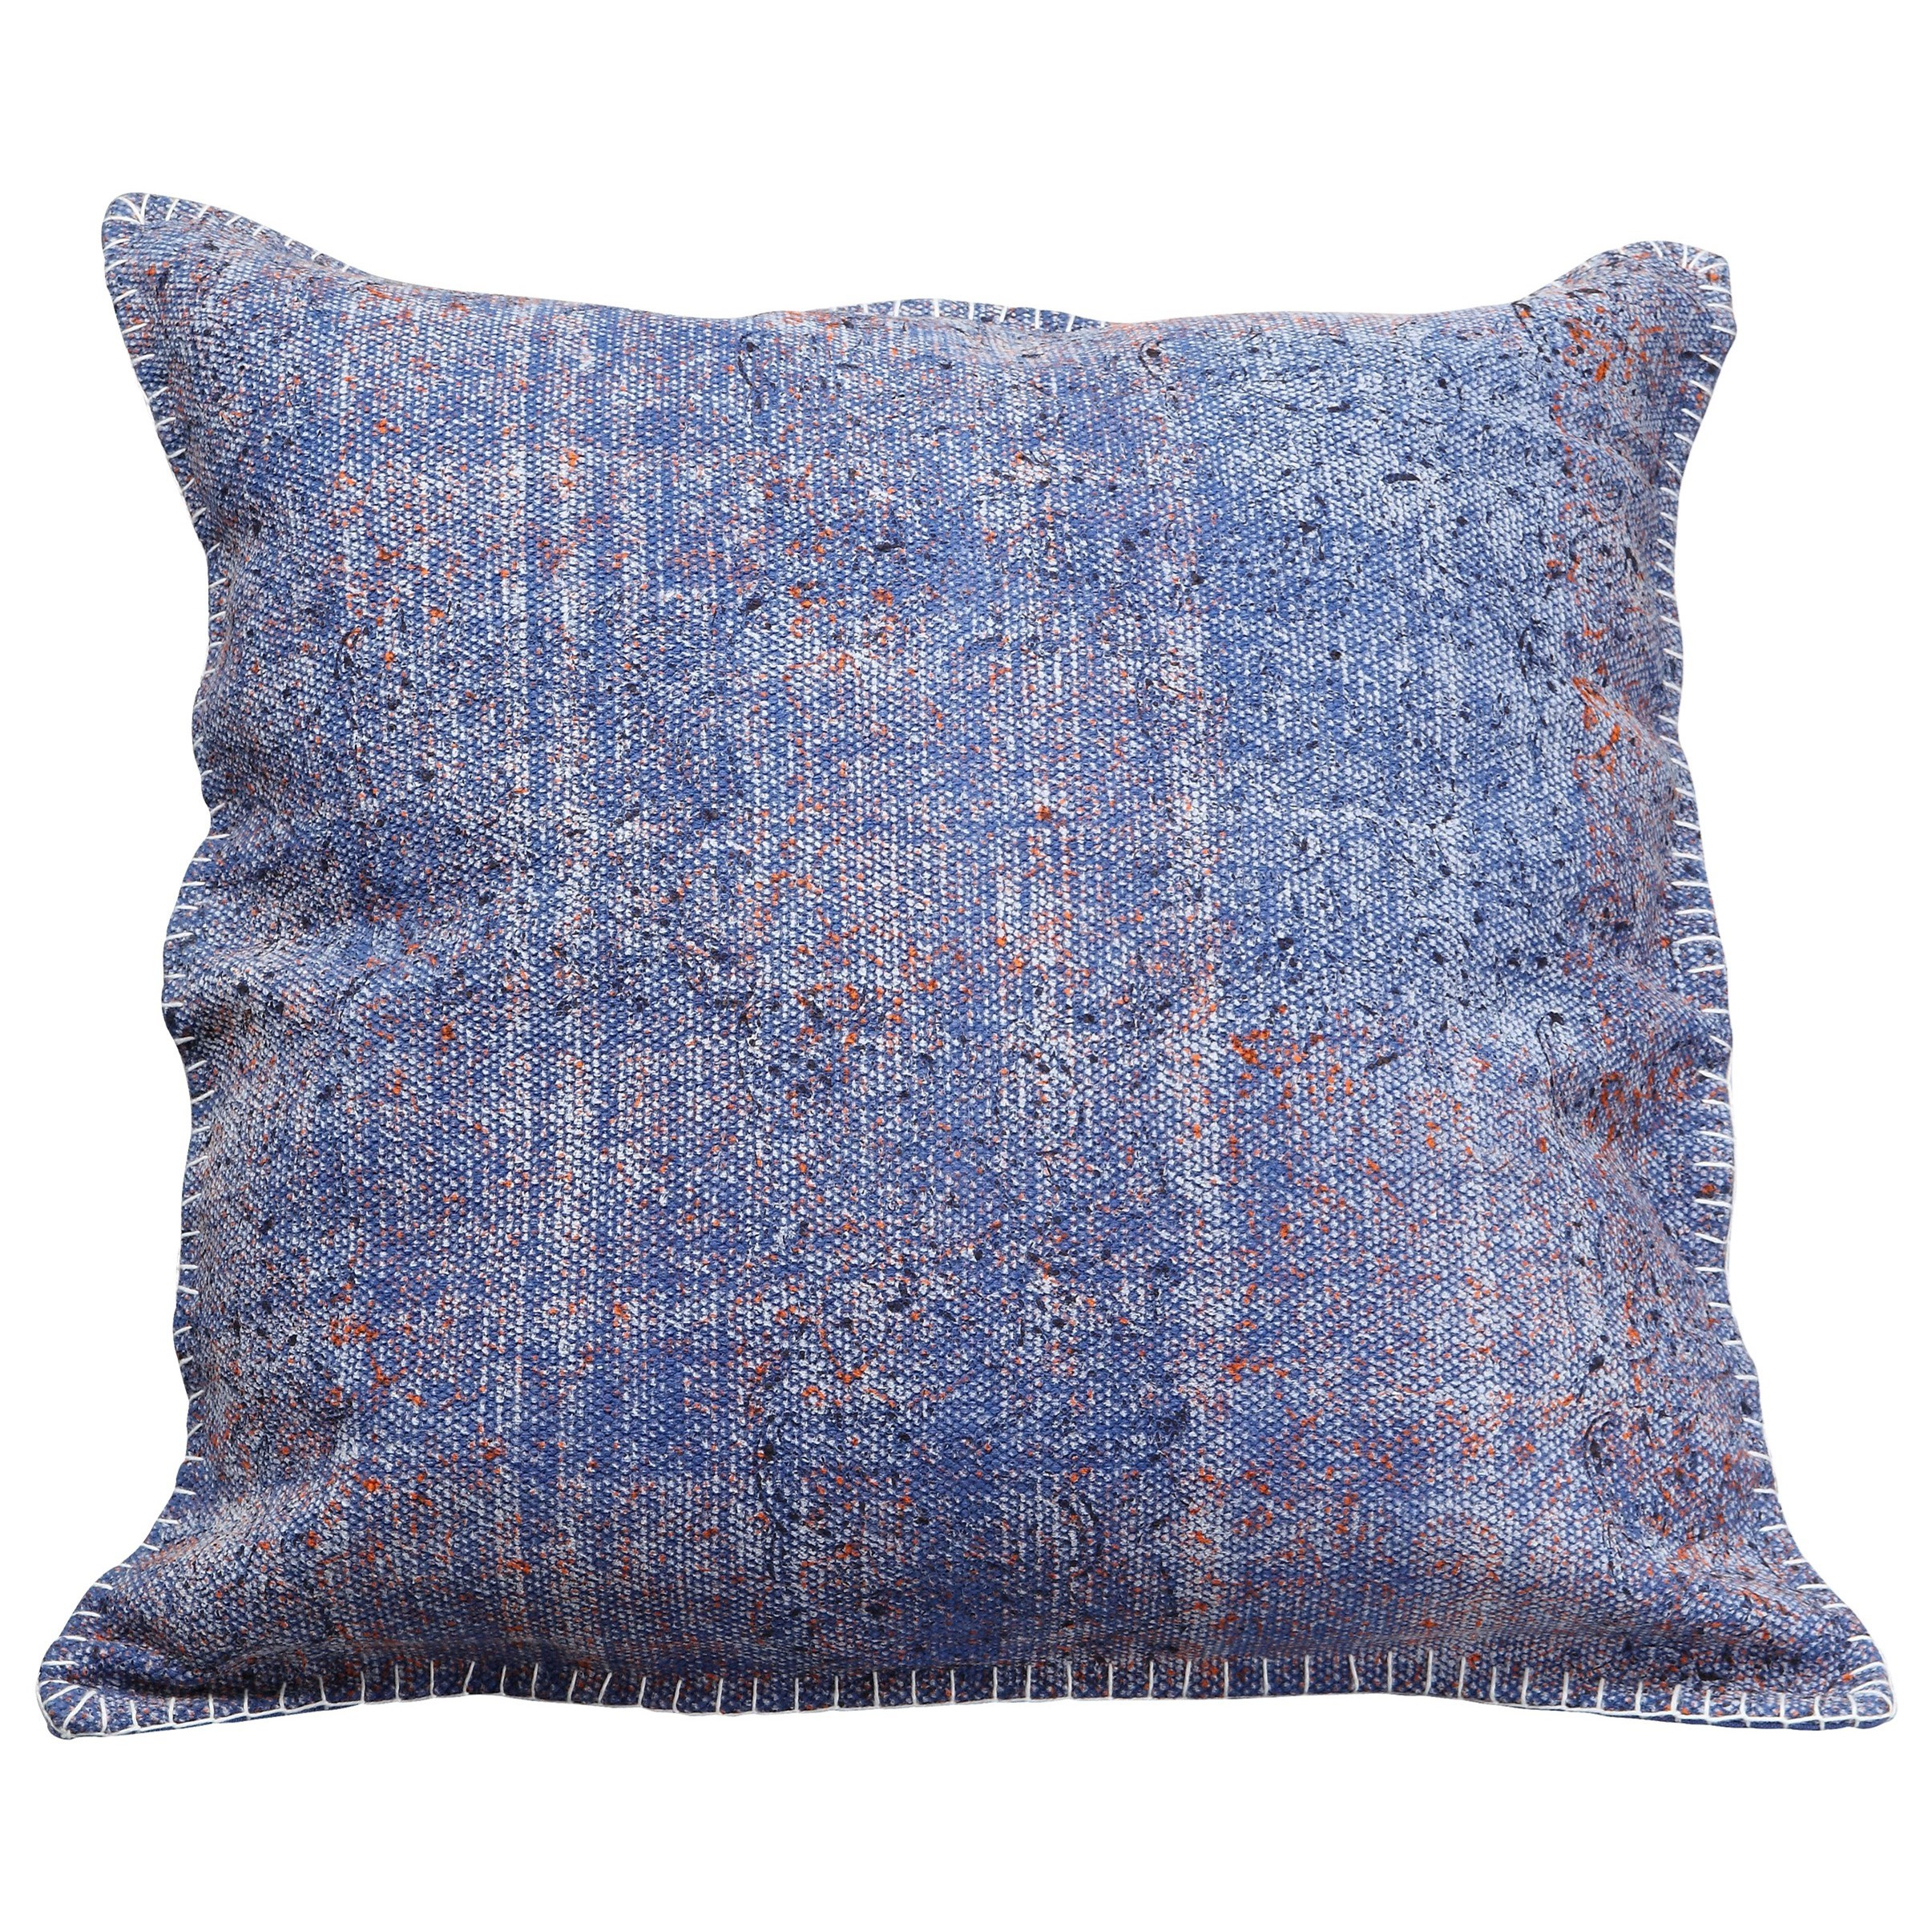 Pillows and Throws Floret Cushion Blue by Moe's Home Collection at Stoney Creek Furniture